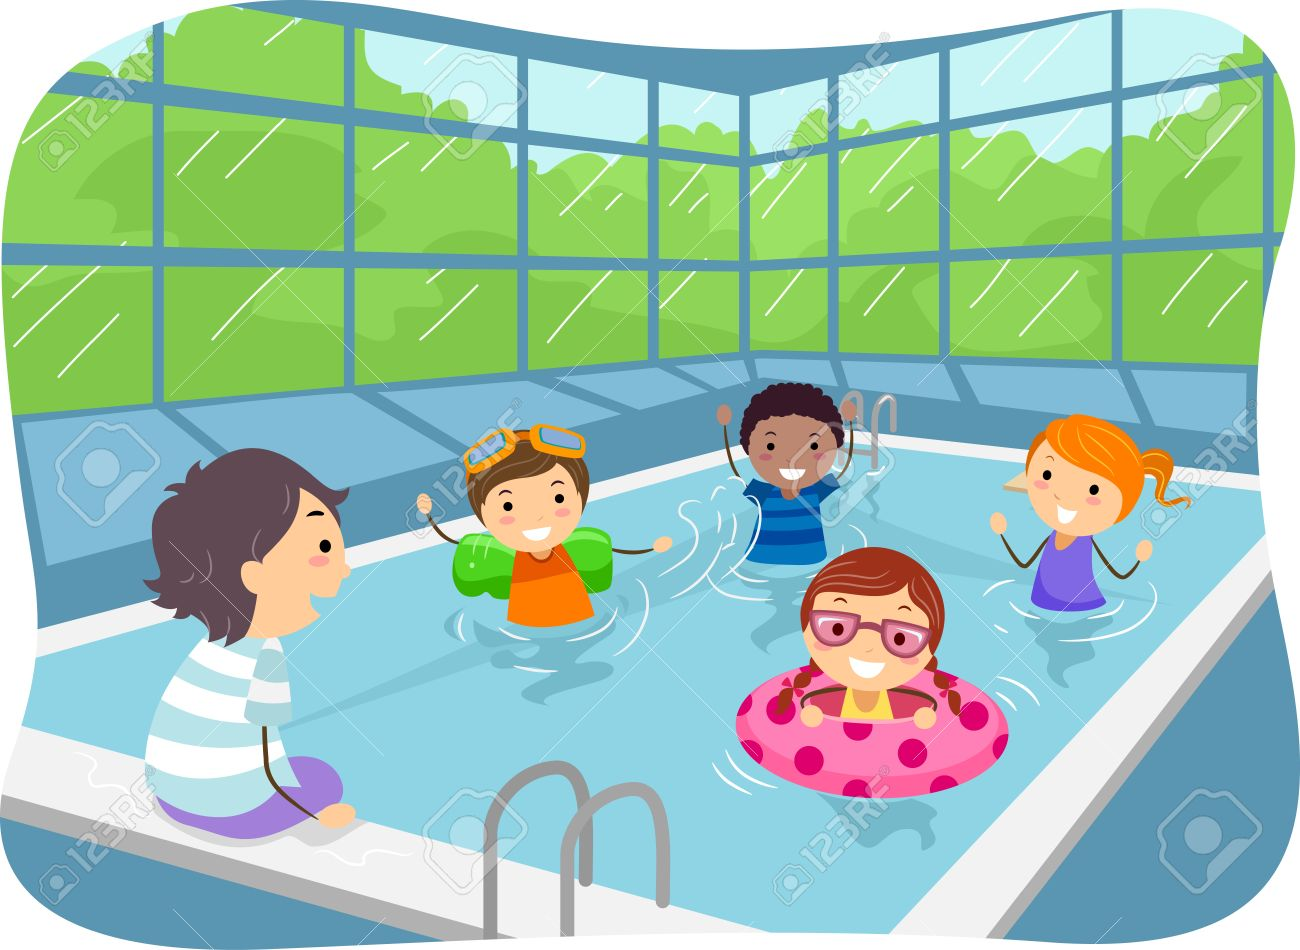 Illustration of Kids Swimming in an Indoor Swimming Pool.